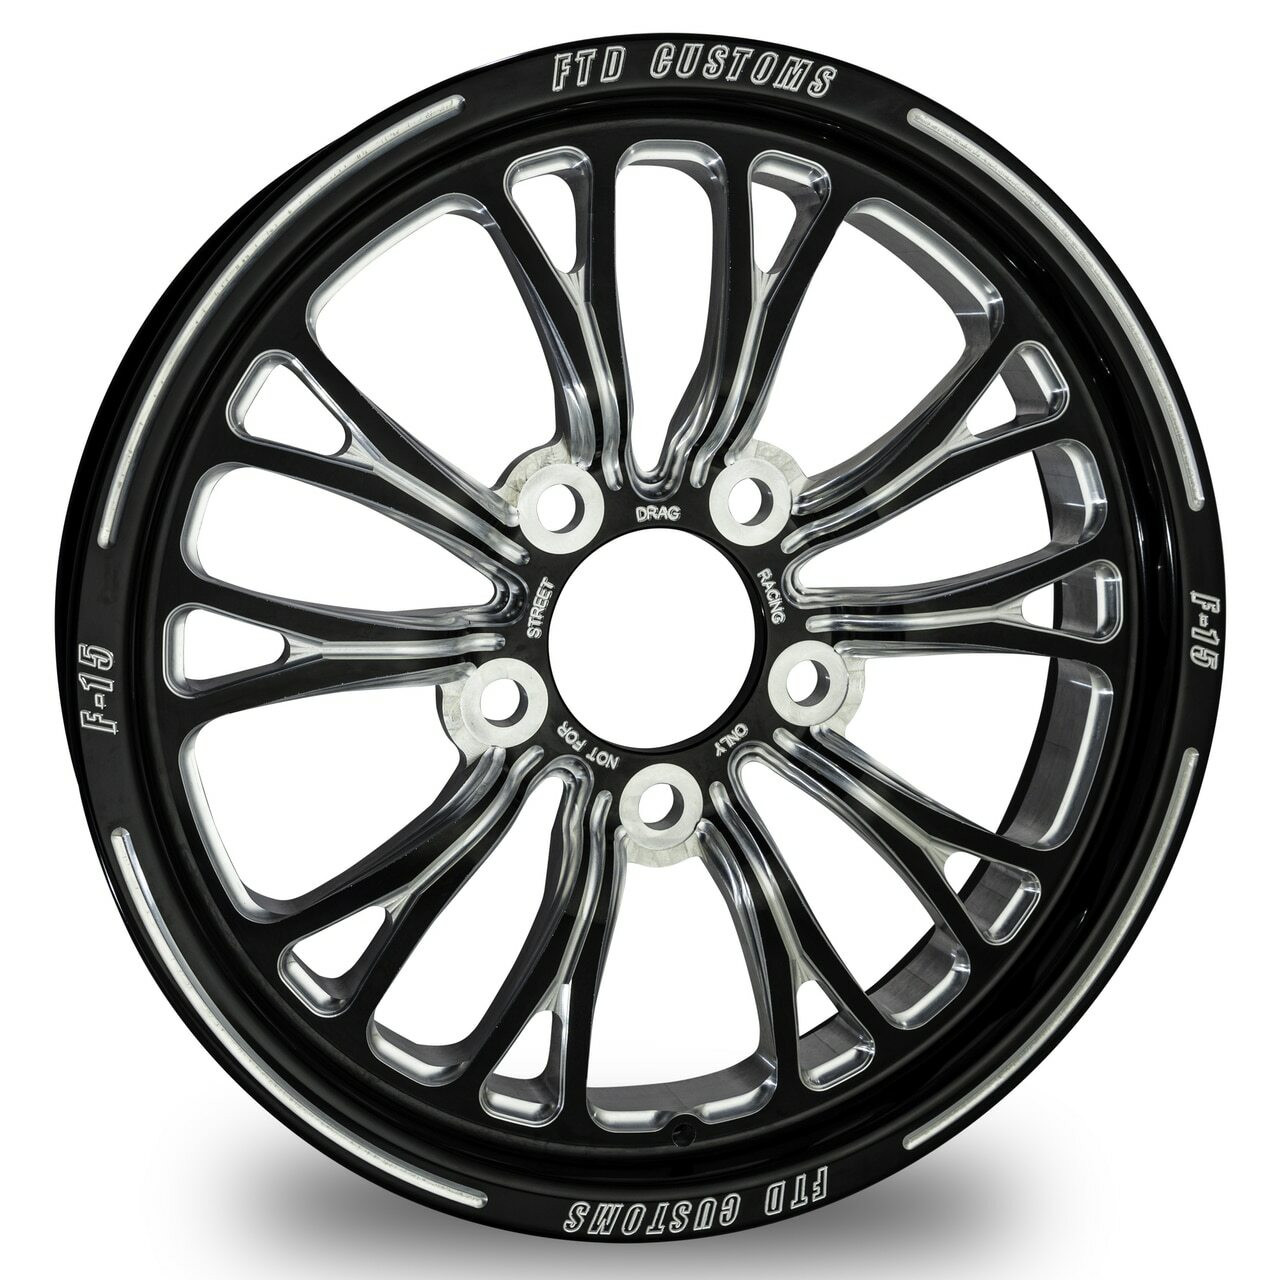 F15 Drag Racing Wheel - FTD Customs black anodized Drag Race Wheel